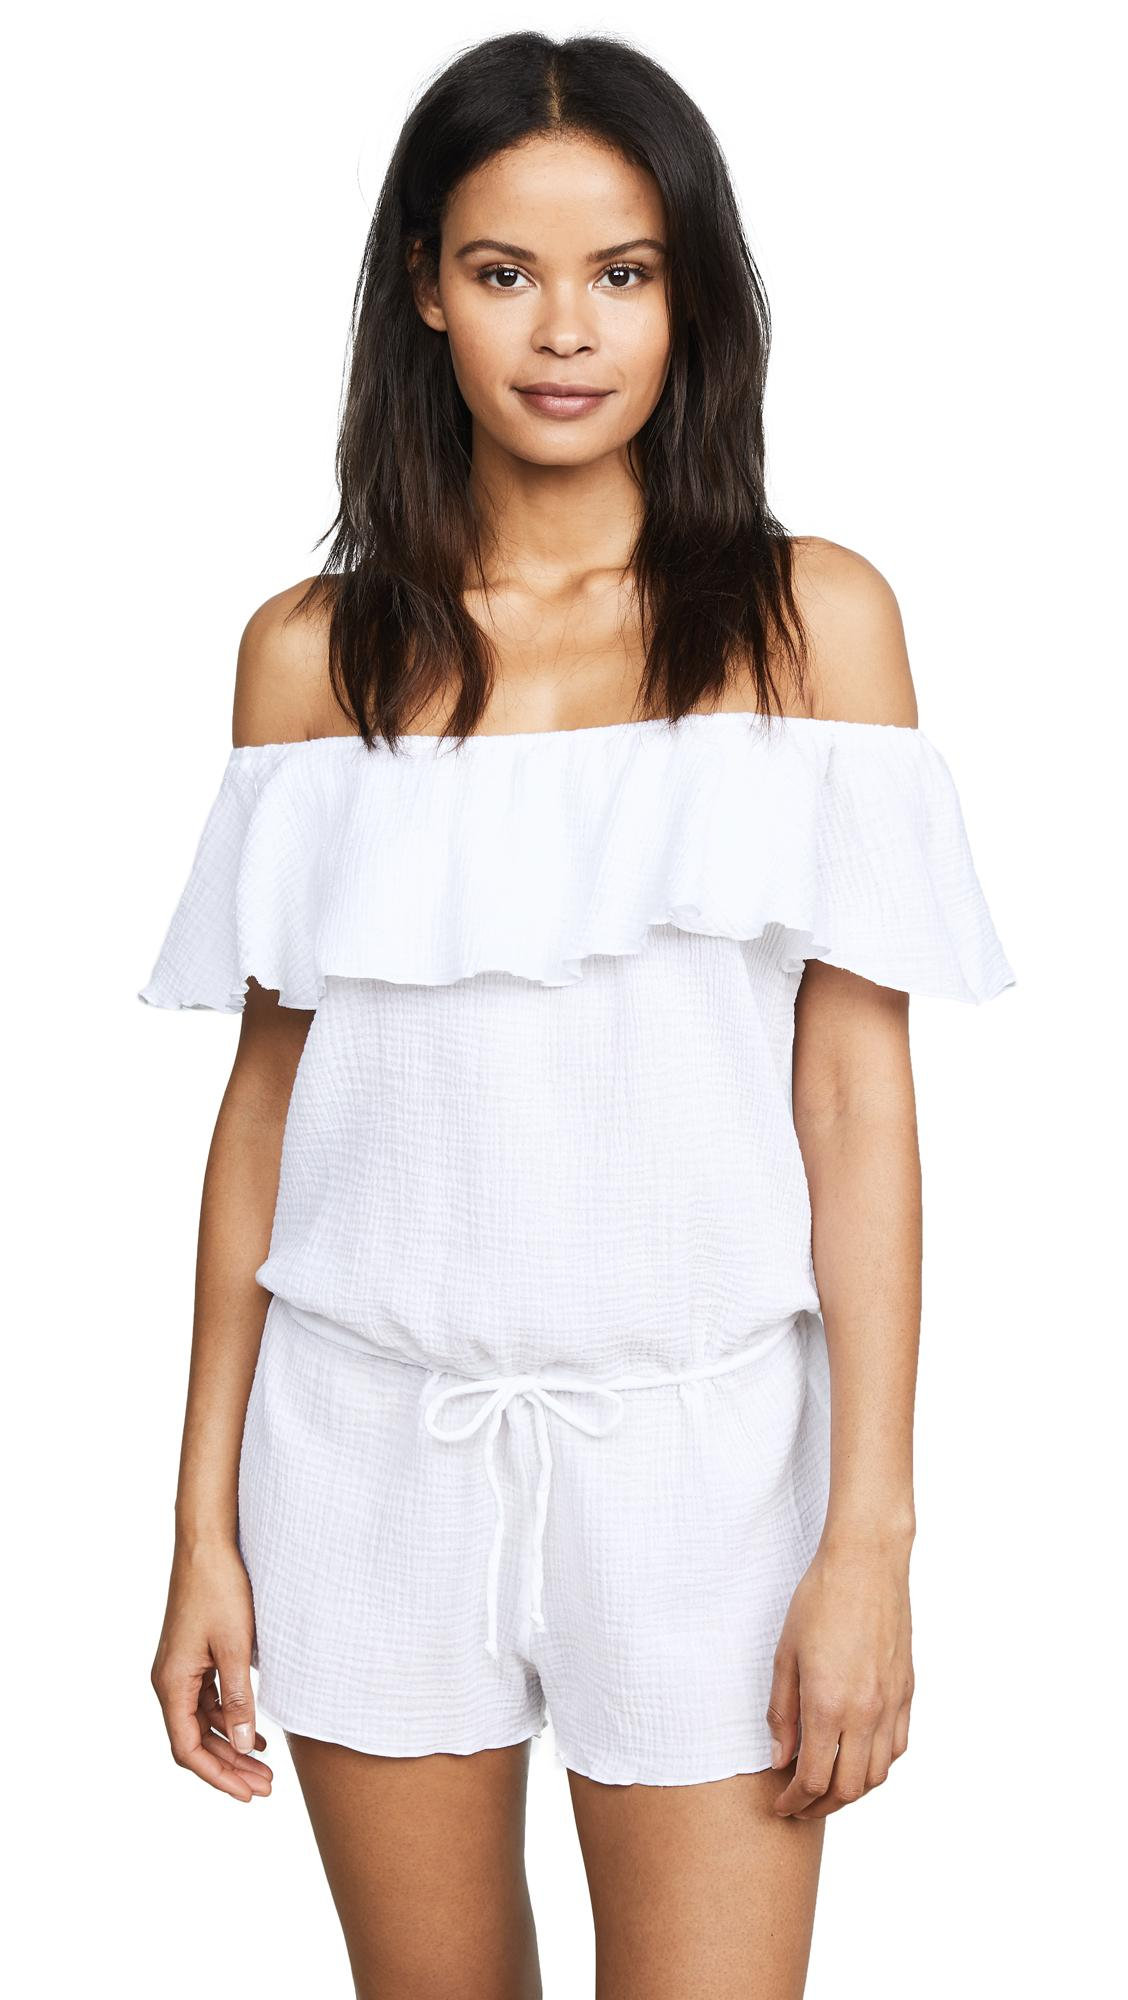 ee7adc6adac1 Eberjey Nomad Tula Romper In White